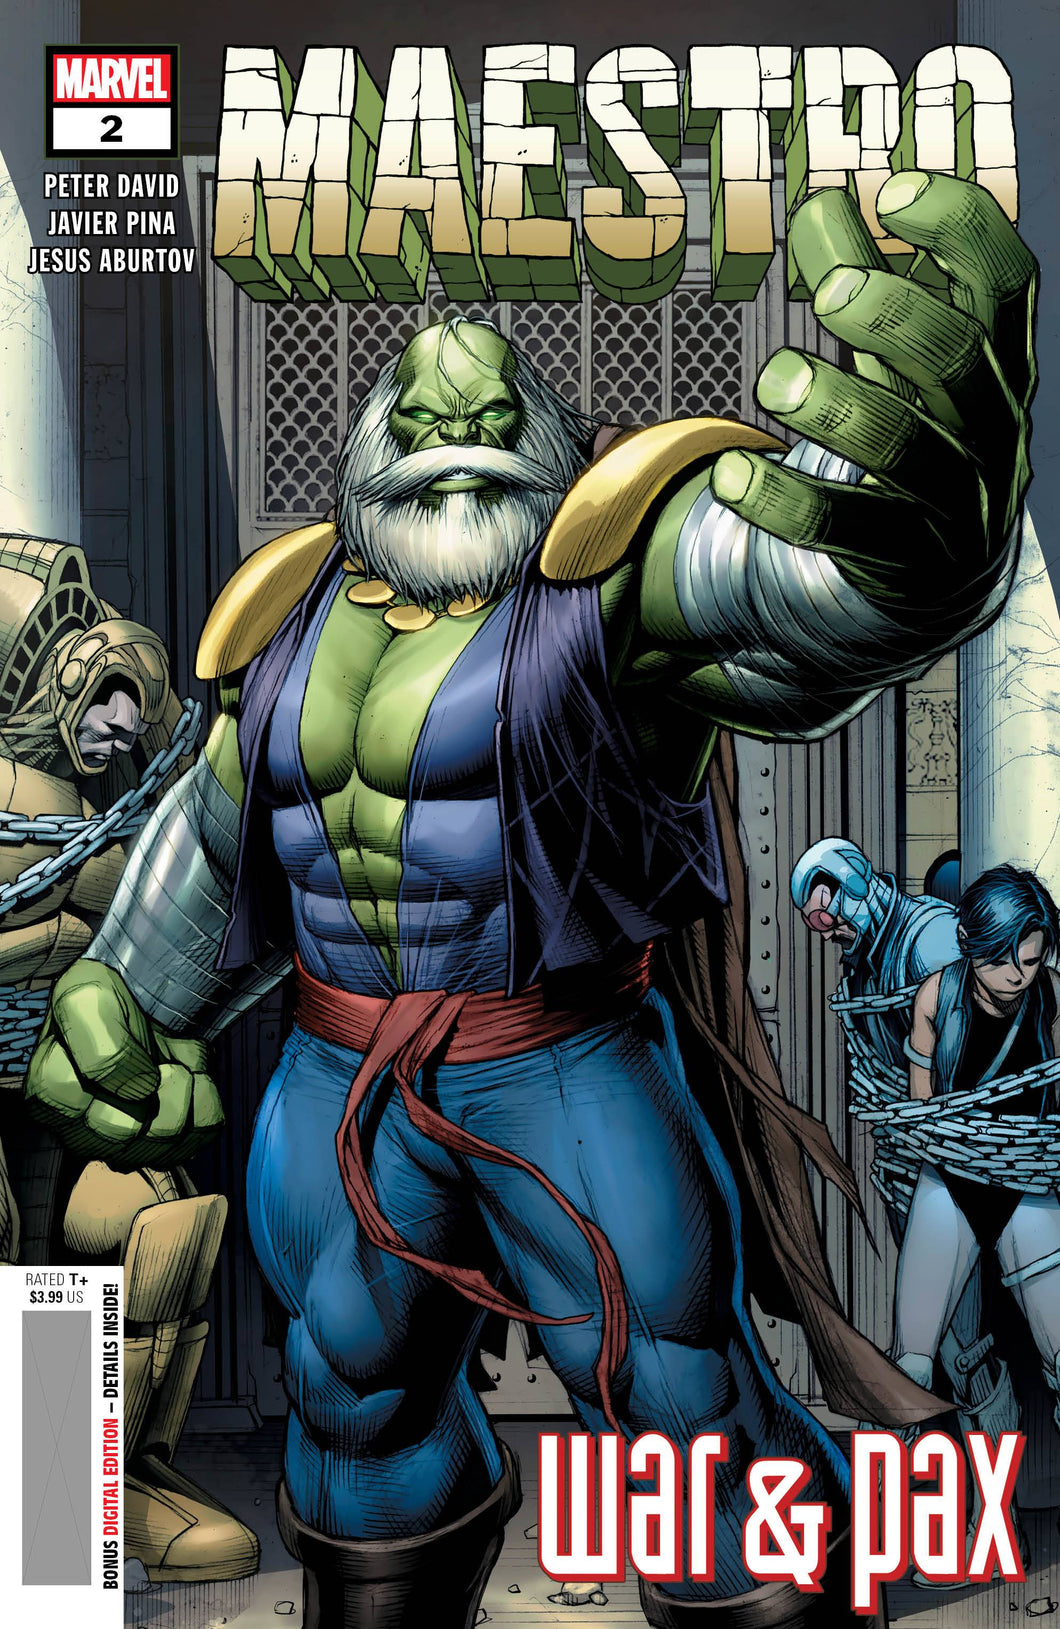 HULK: MAESTRO WAR AND PAX #2 (OF 5)